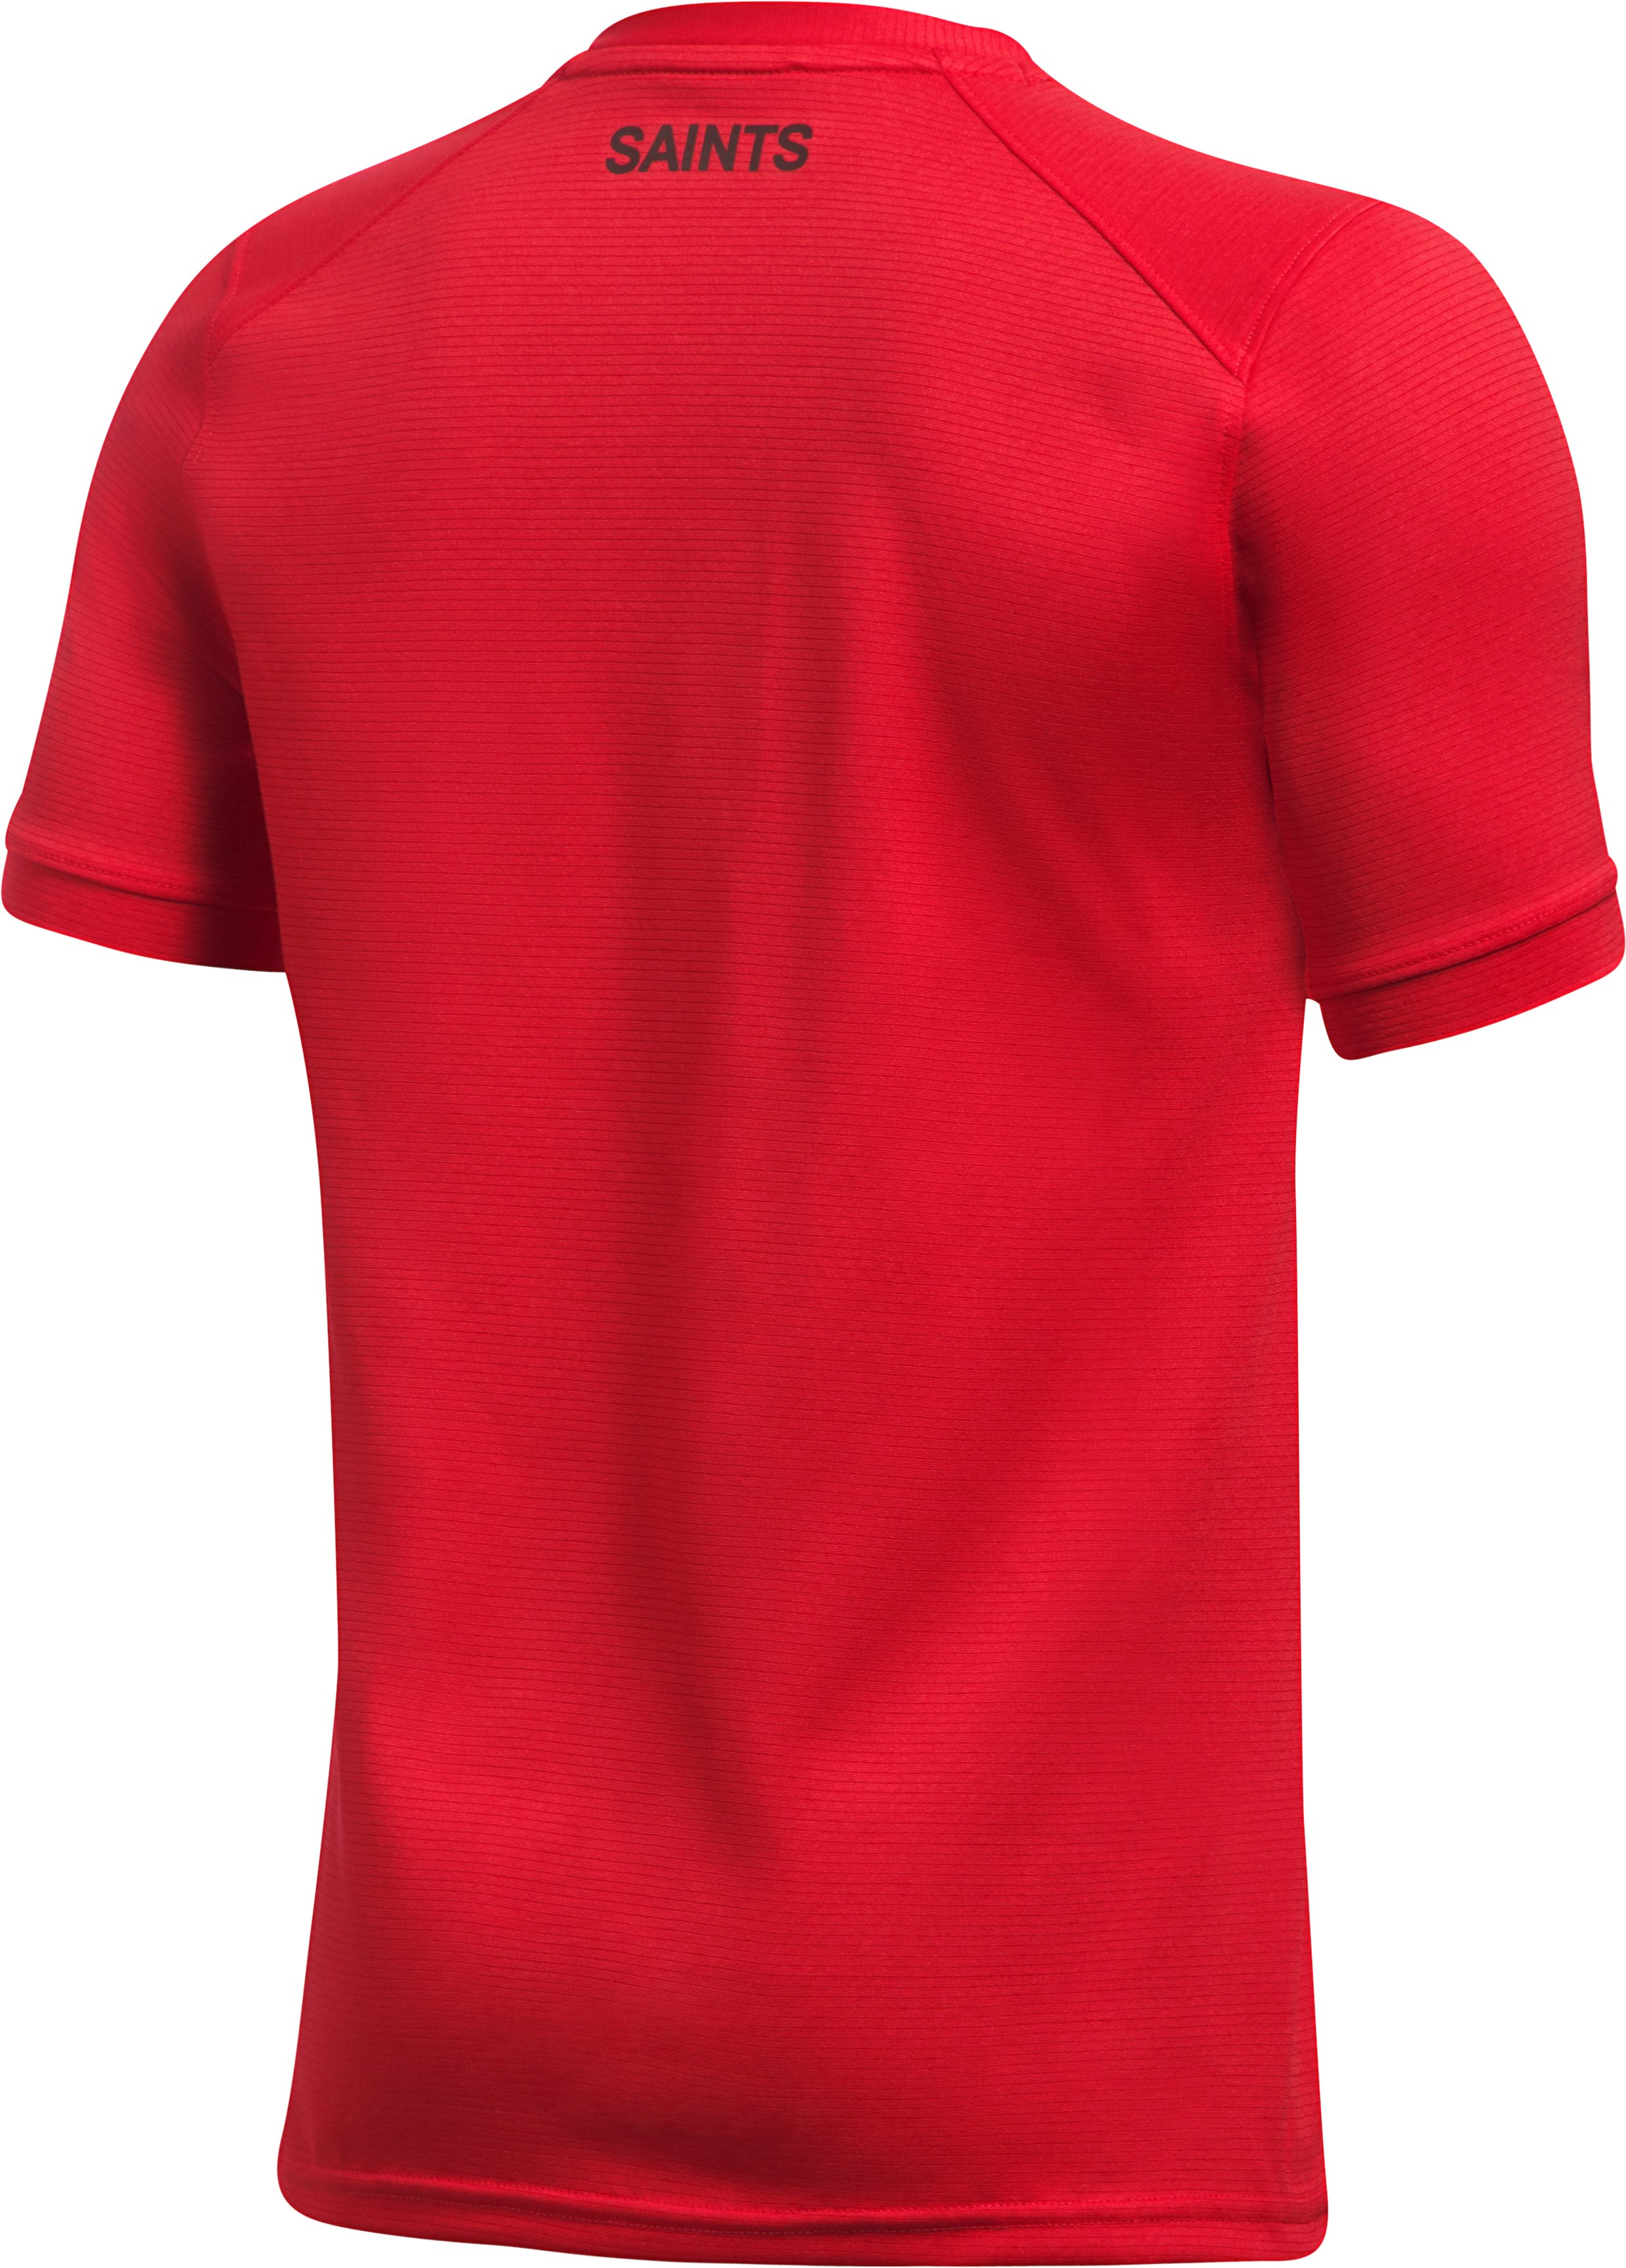 Kids' Southampton Training Short Sleeve, Red,